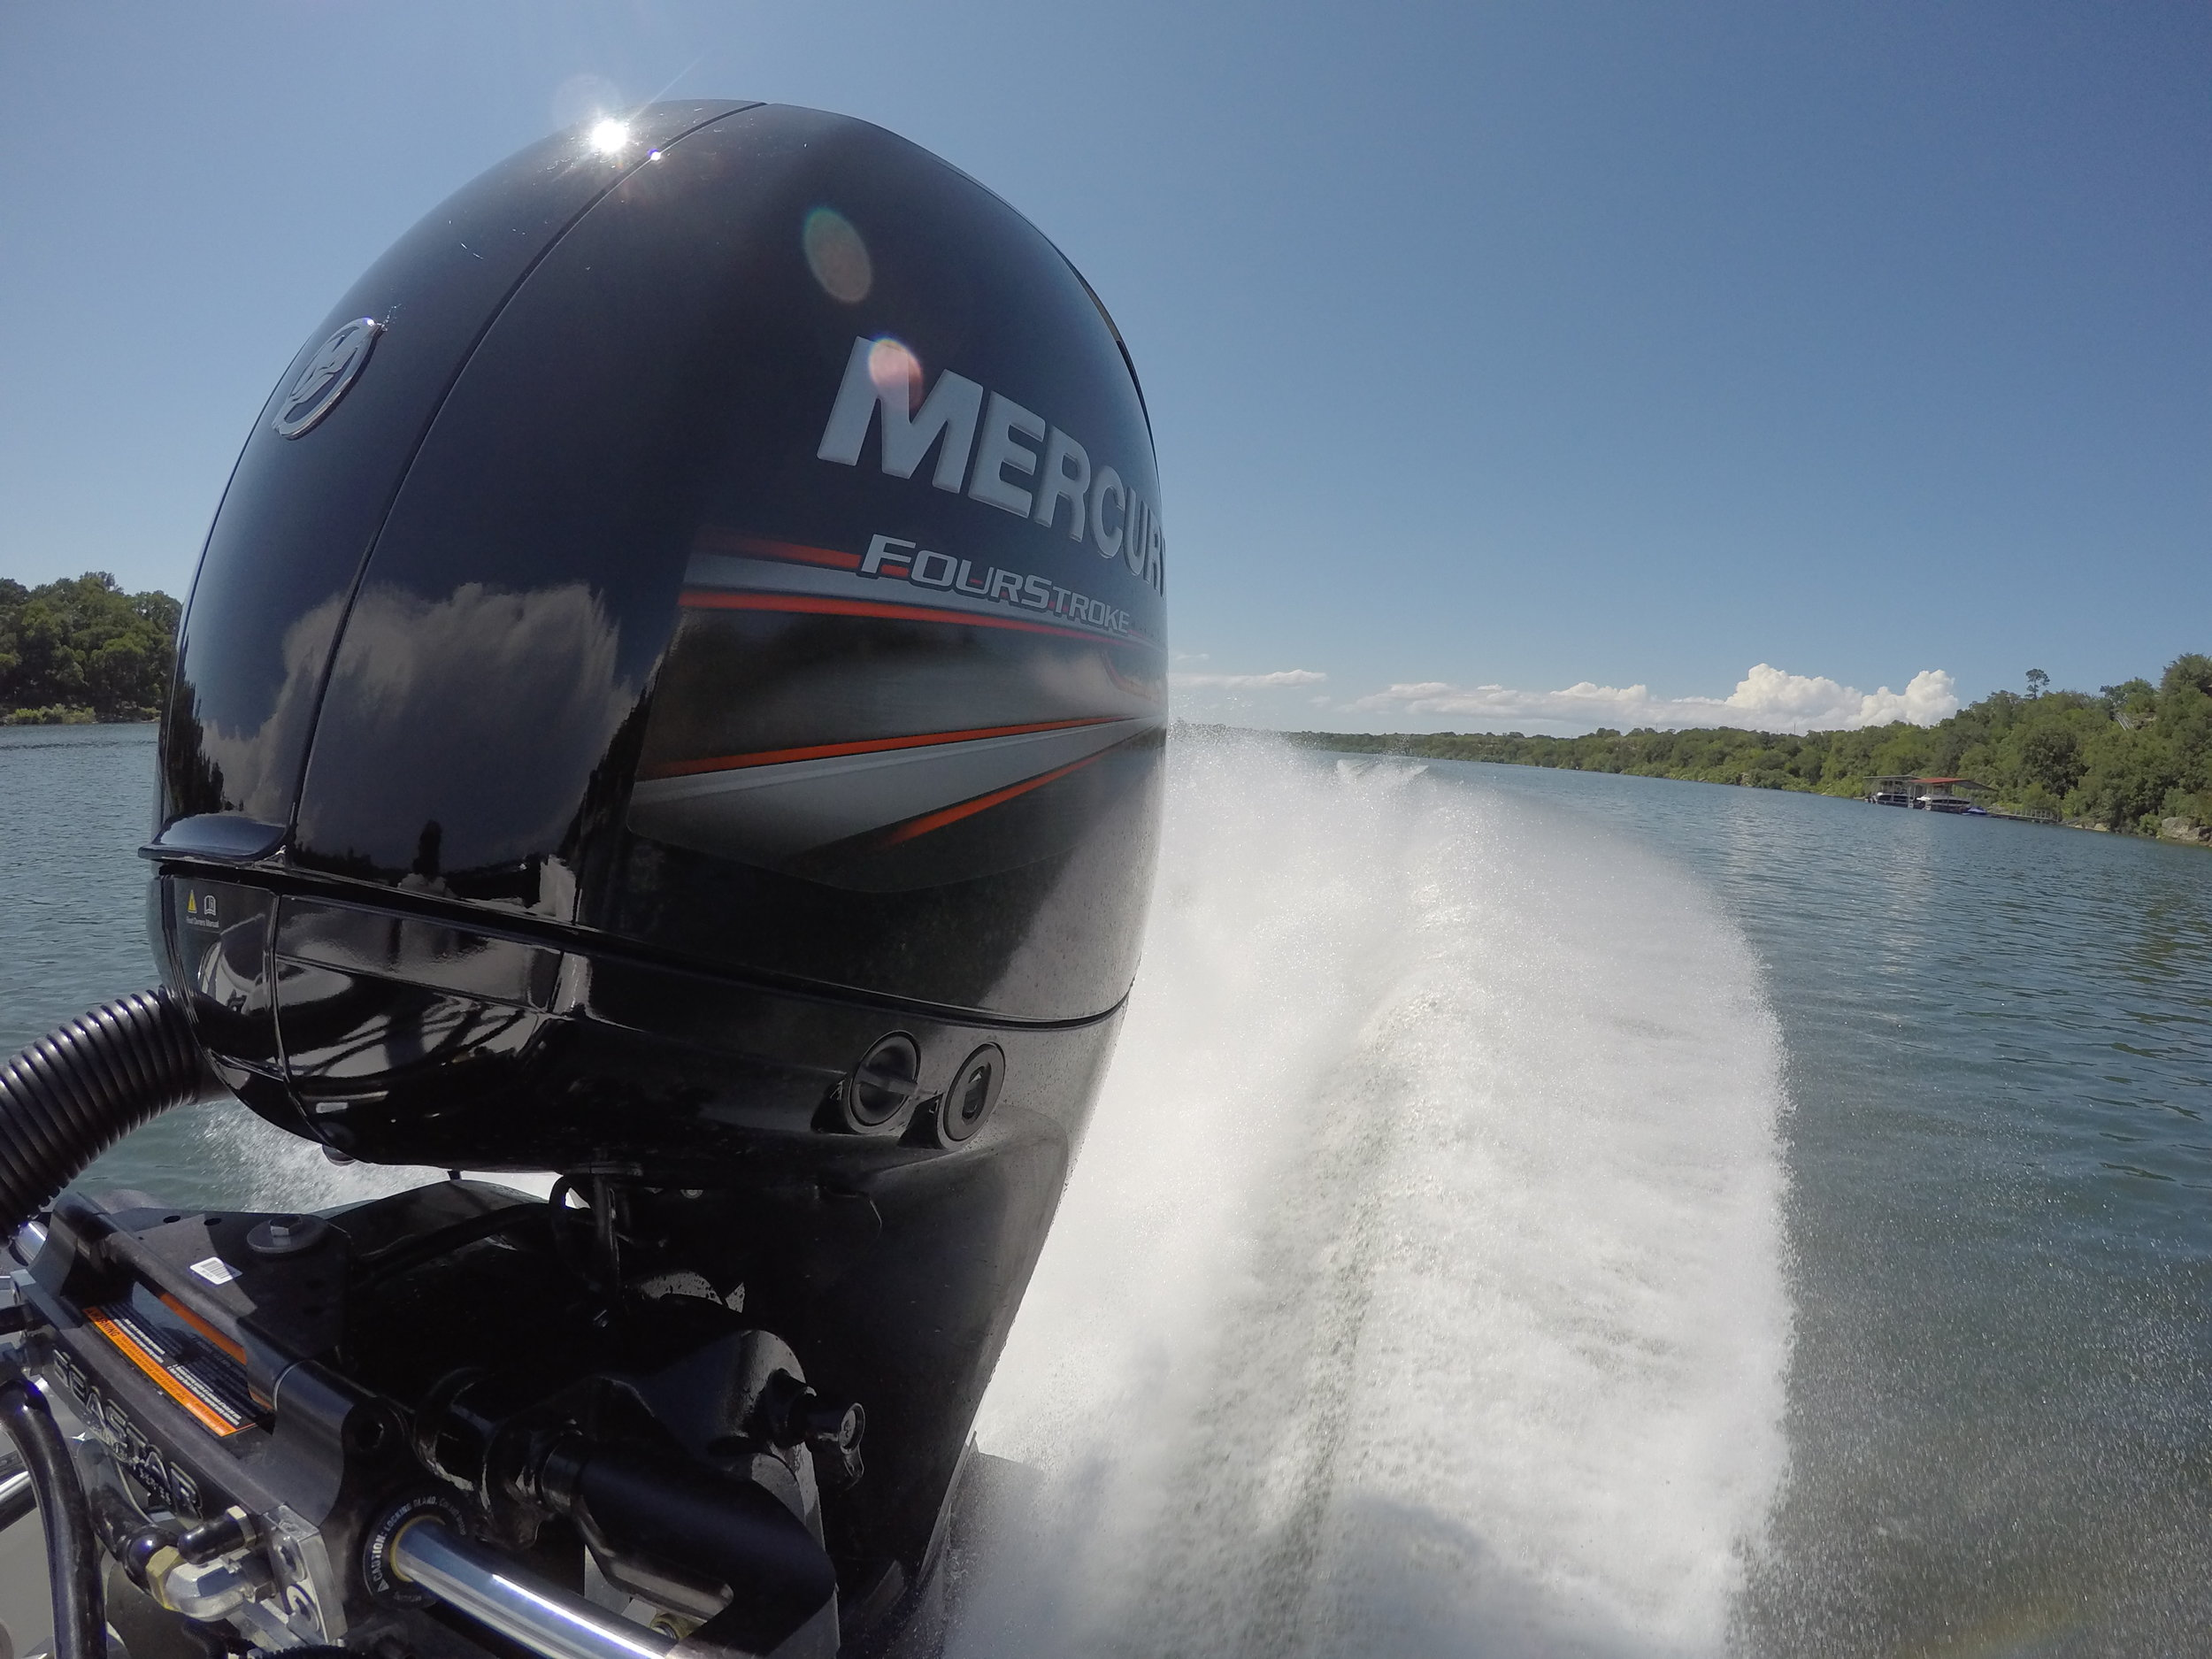 """The 28"""" ProMax prop is the best all around prop so far, even though it hits the rev limiter at 77 MPH, it gets incredible mileage, handles great and can do it all."""